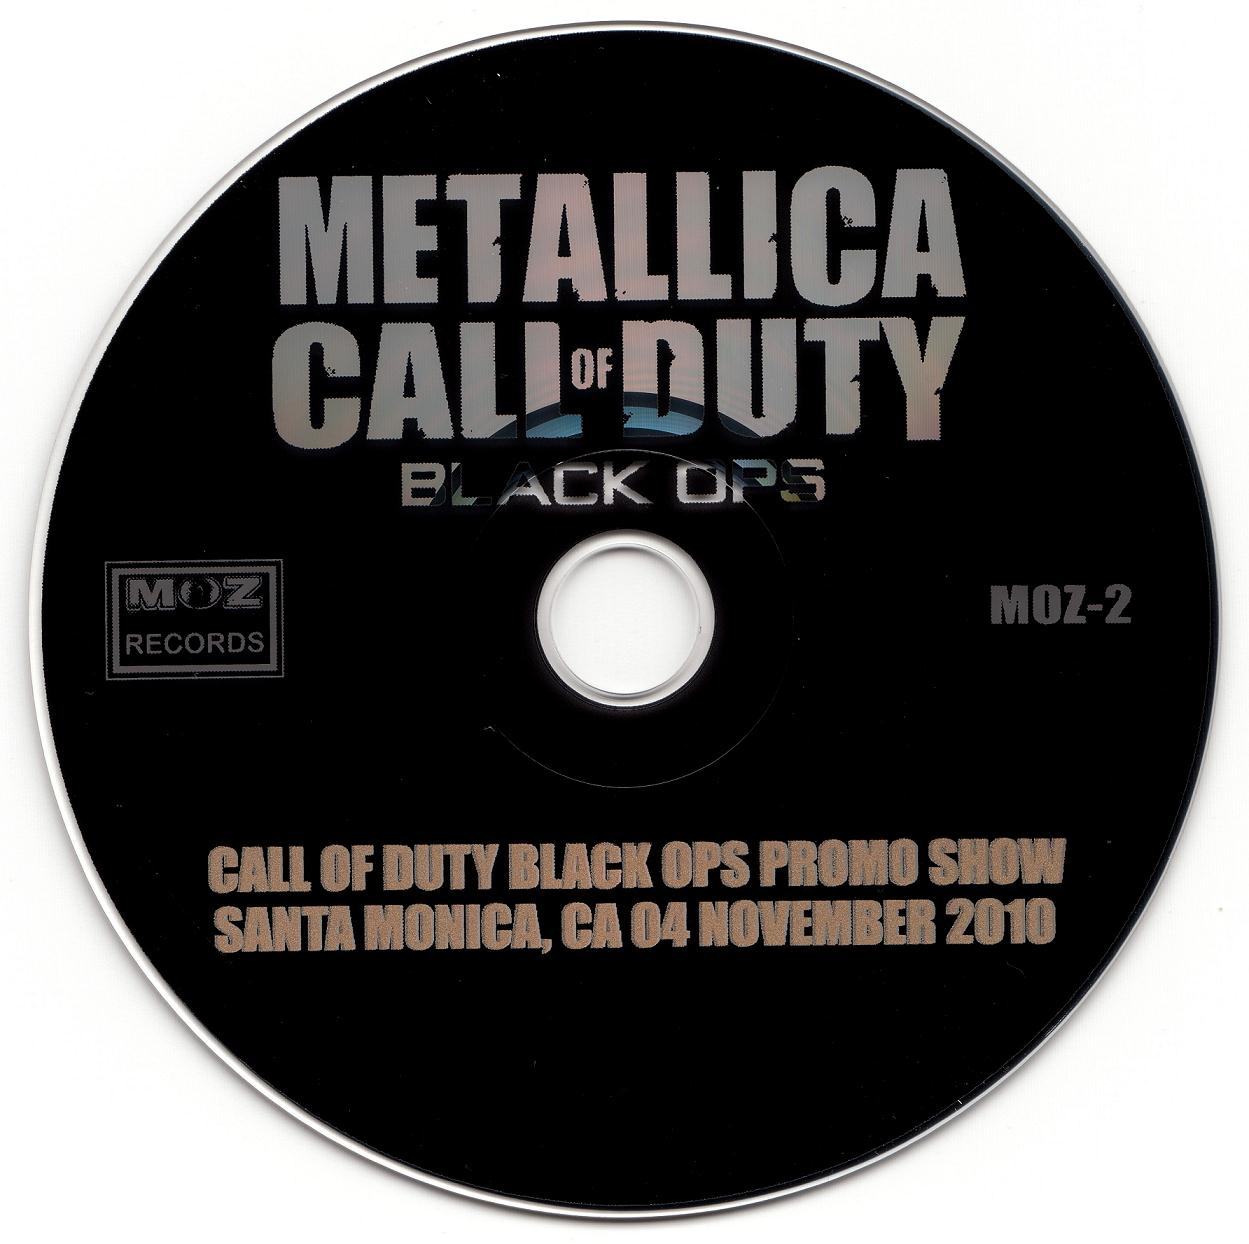 2010-11-04-Call_of_Duty_Black_ops-CD